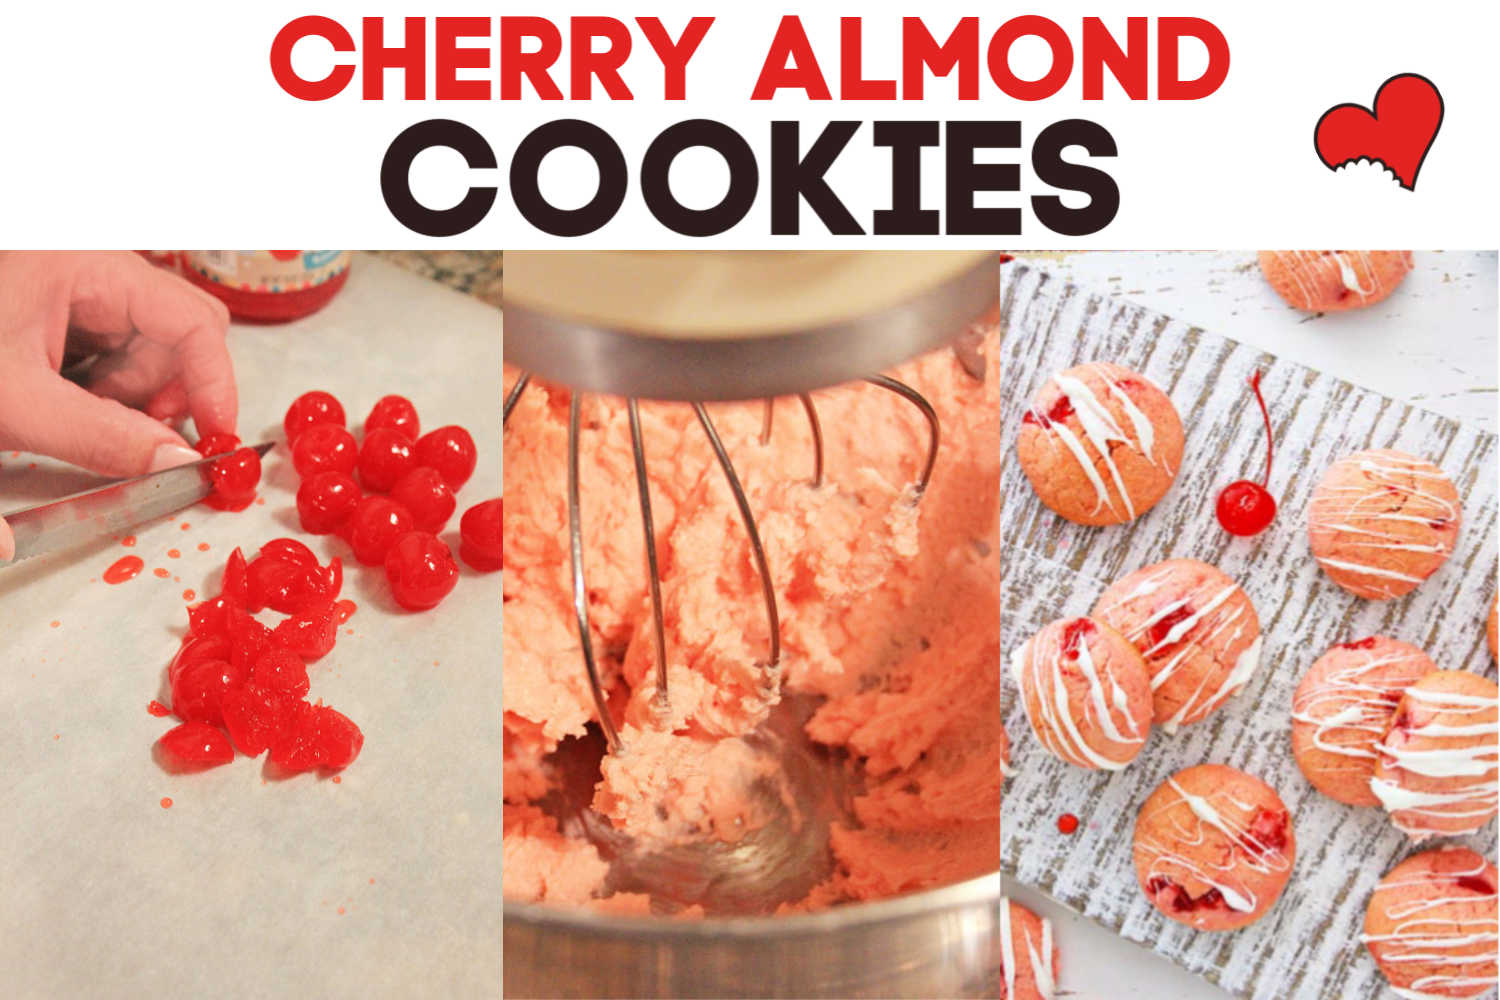 Cherry Almond Cookie recipe three photos including the final drizzled cookies